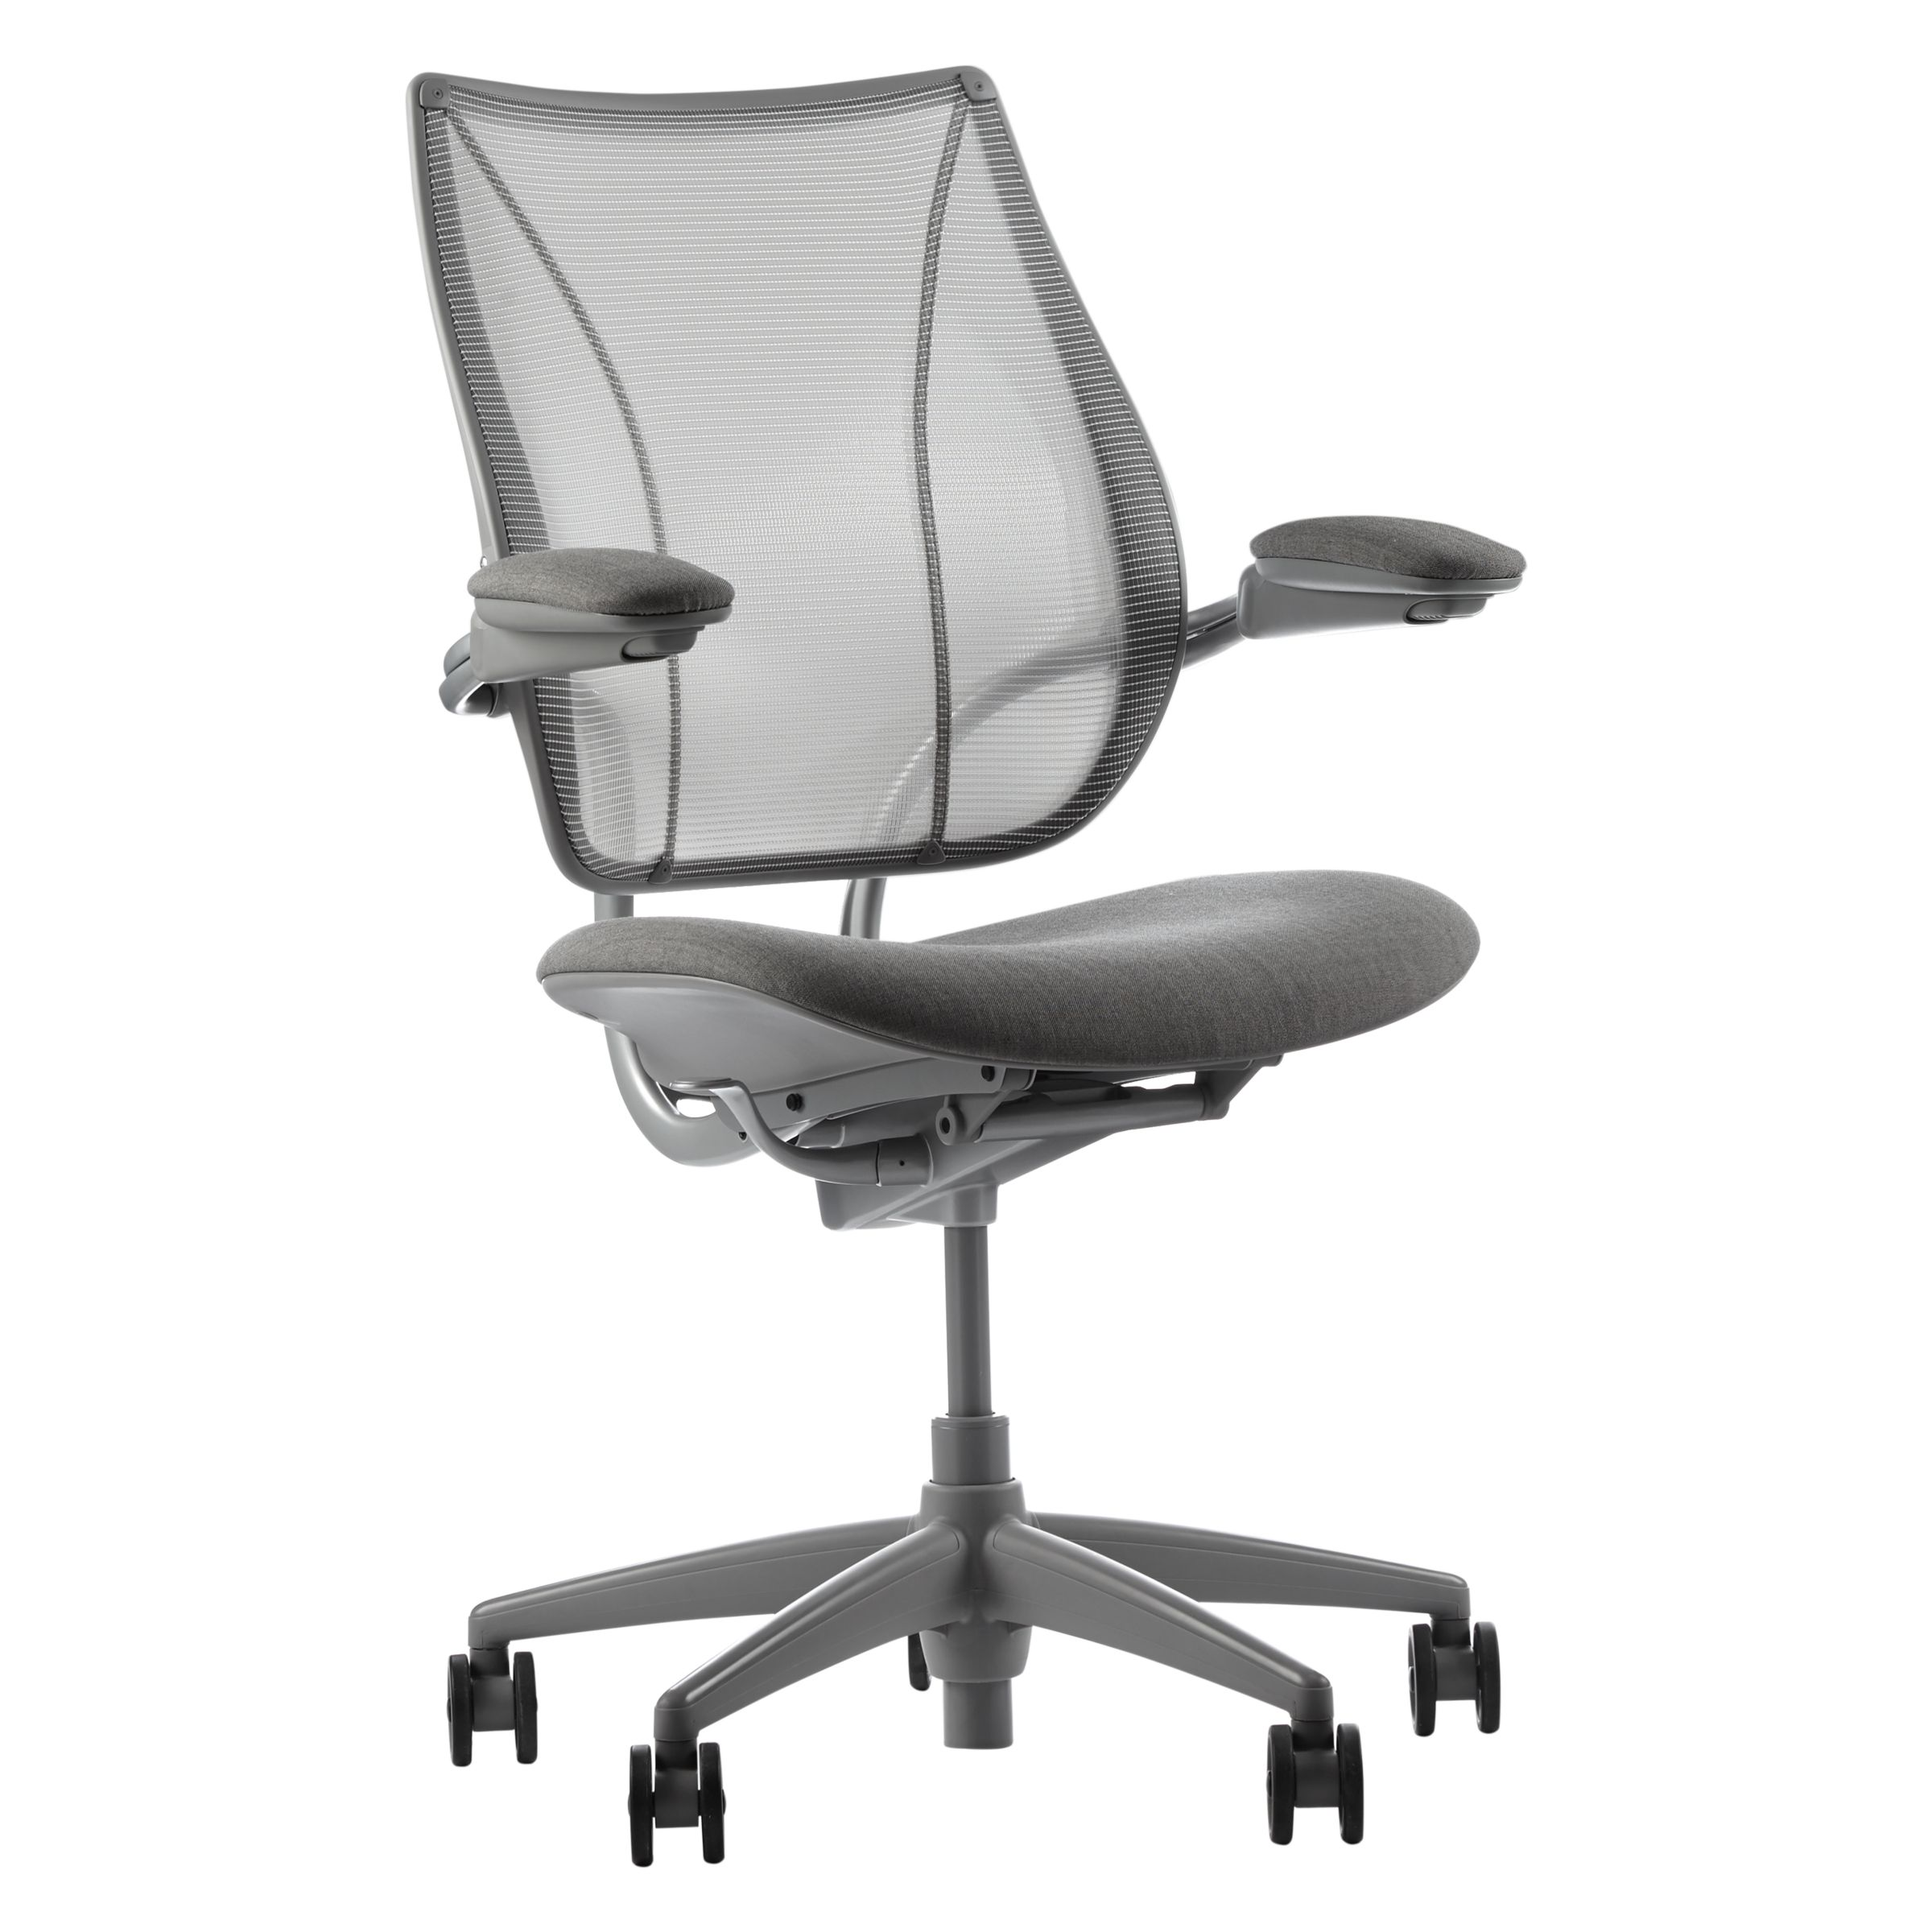 Humanscale Humanscale Liberty Office Chair